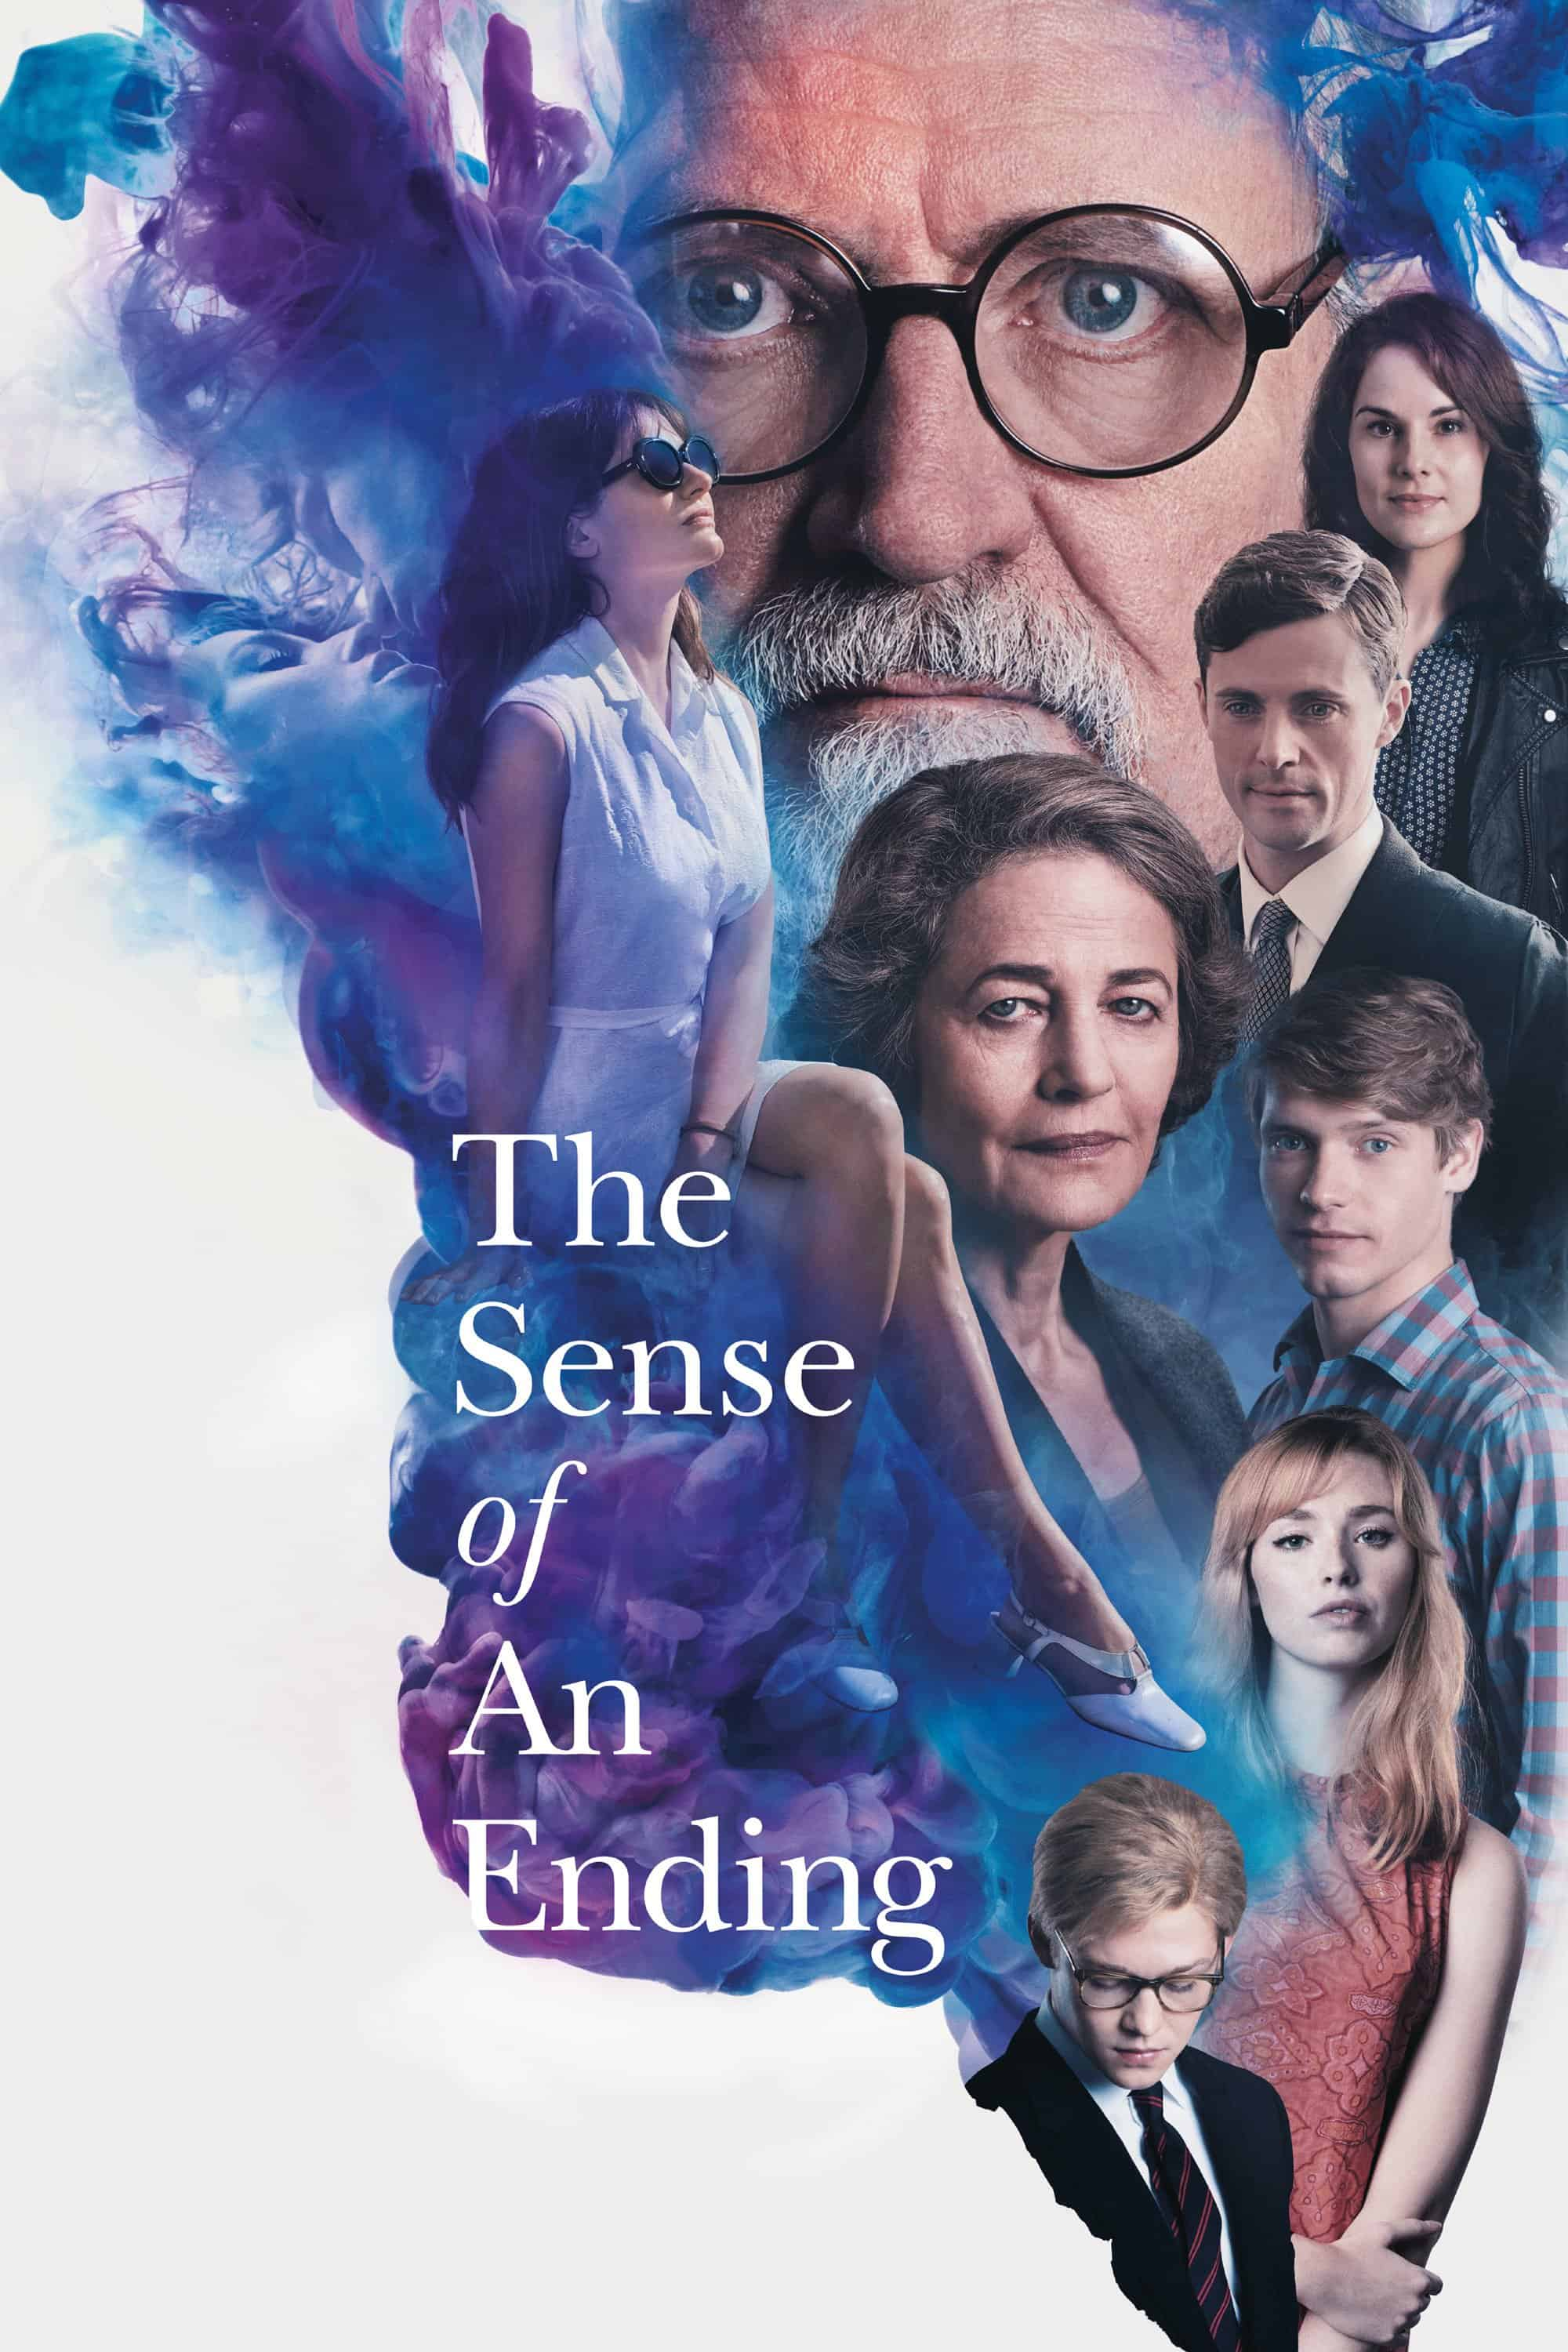 The Sense of an Ending, 2017